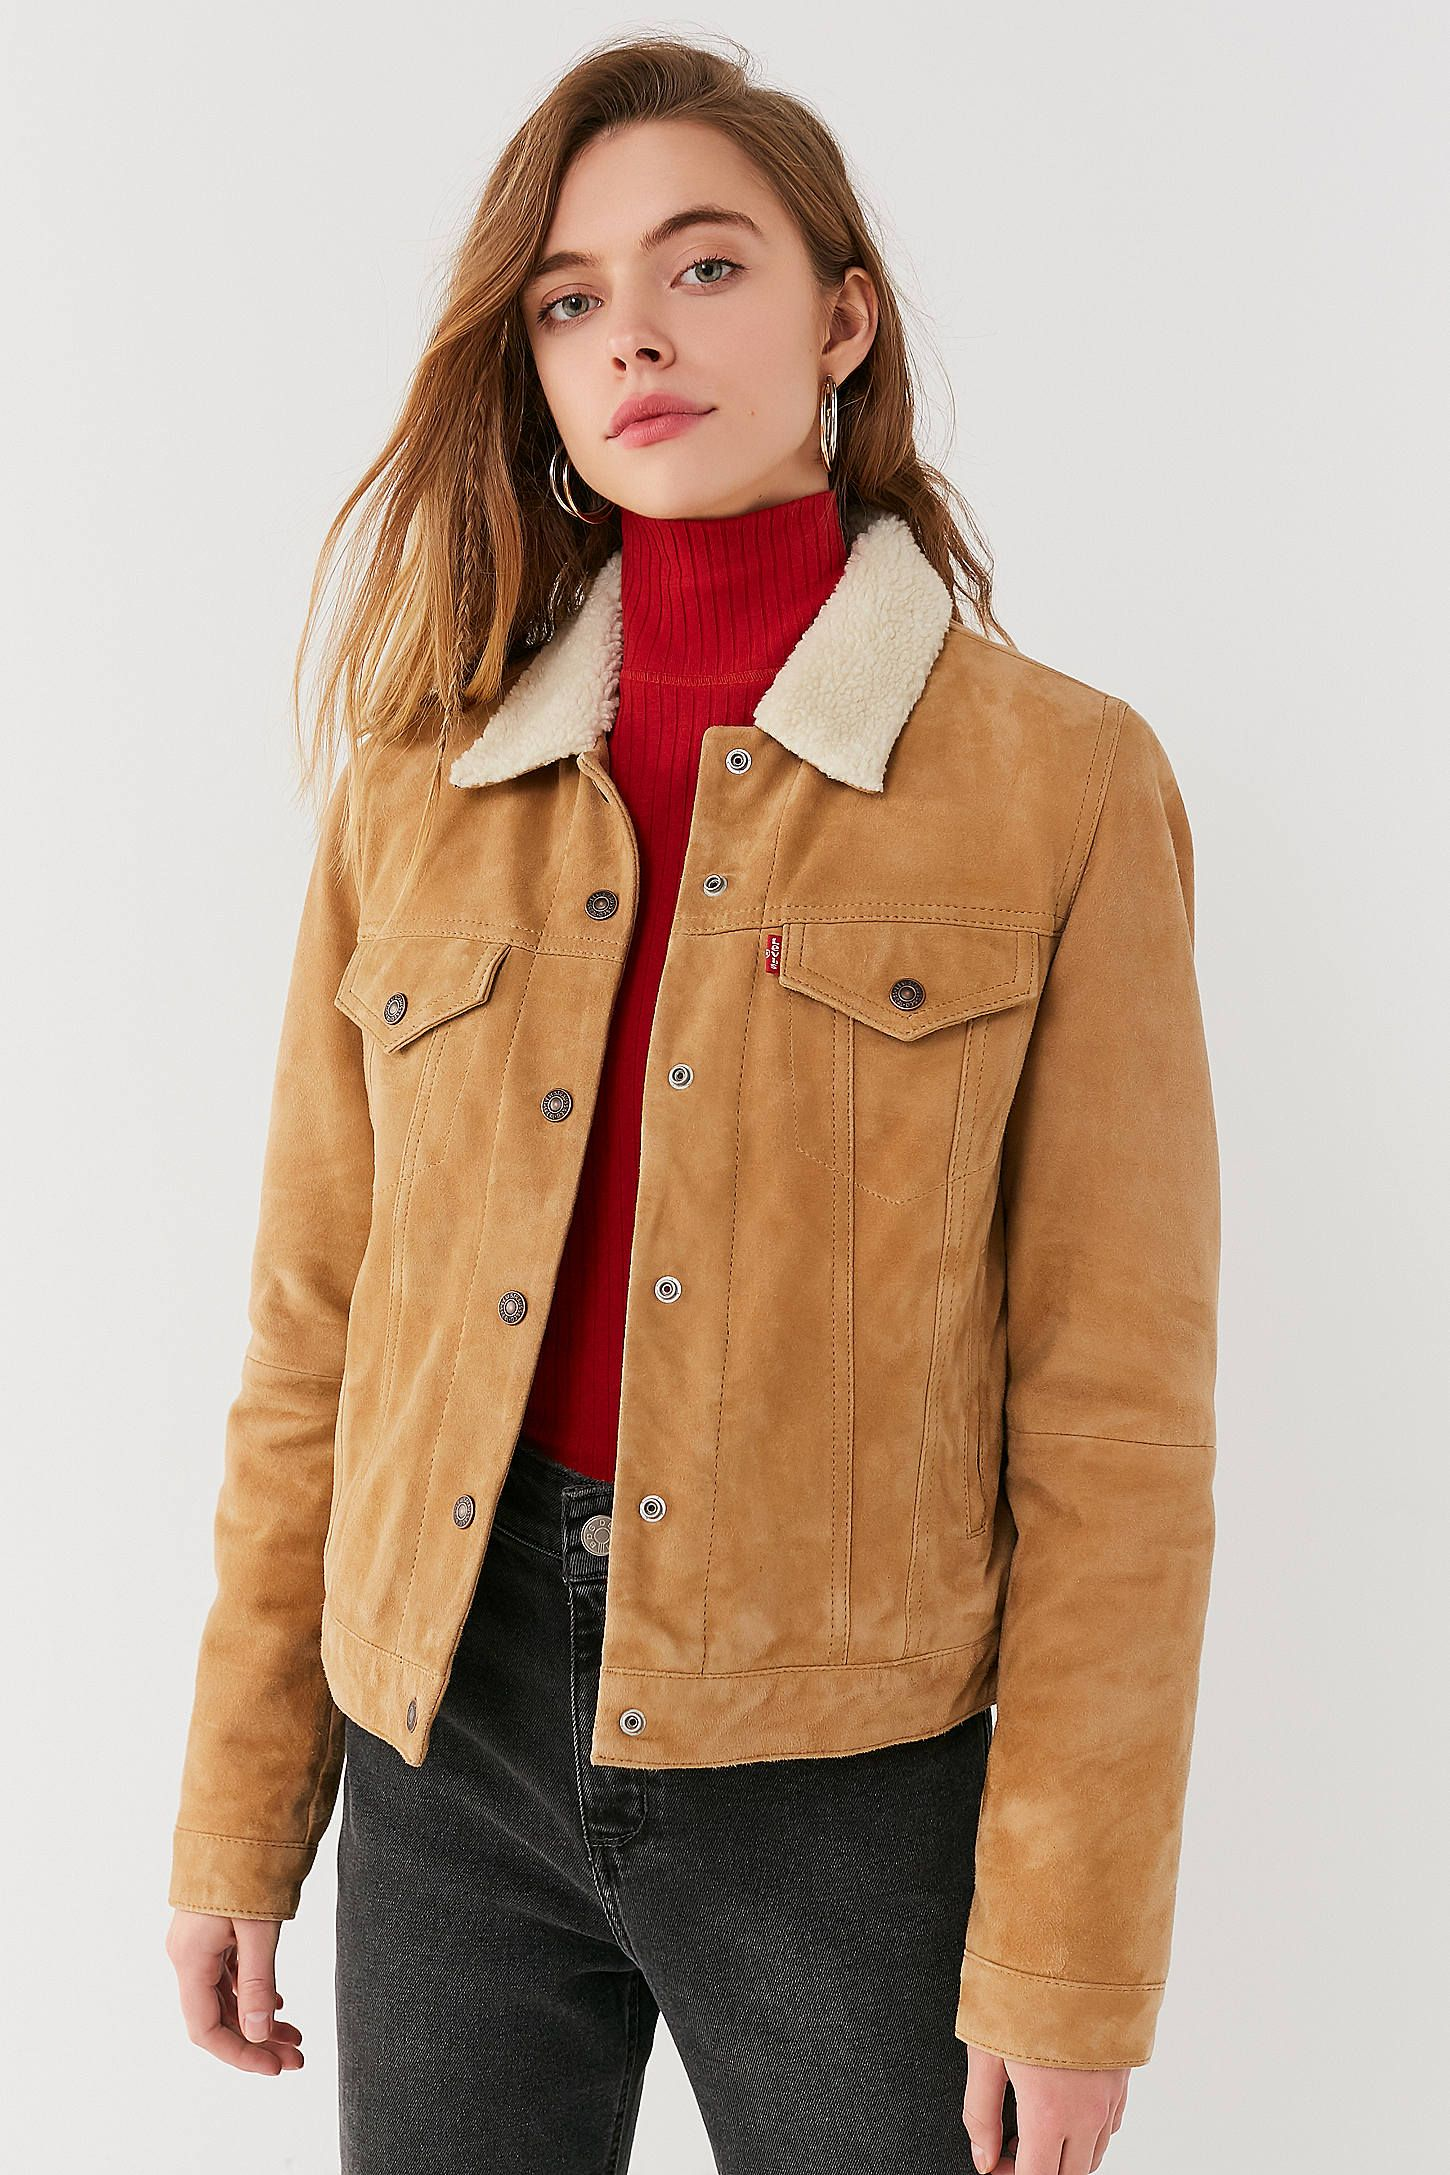 Levi's Suede Sherpa Trucker Jacket Jackets, Denim trends